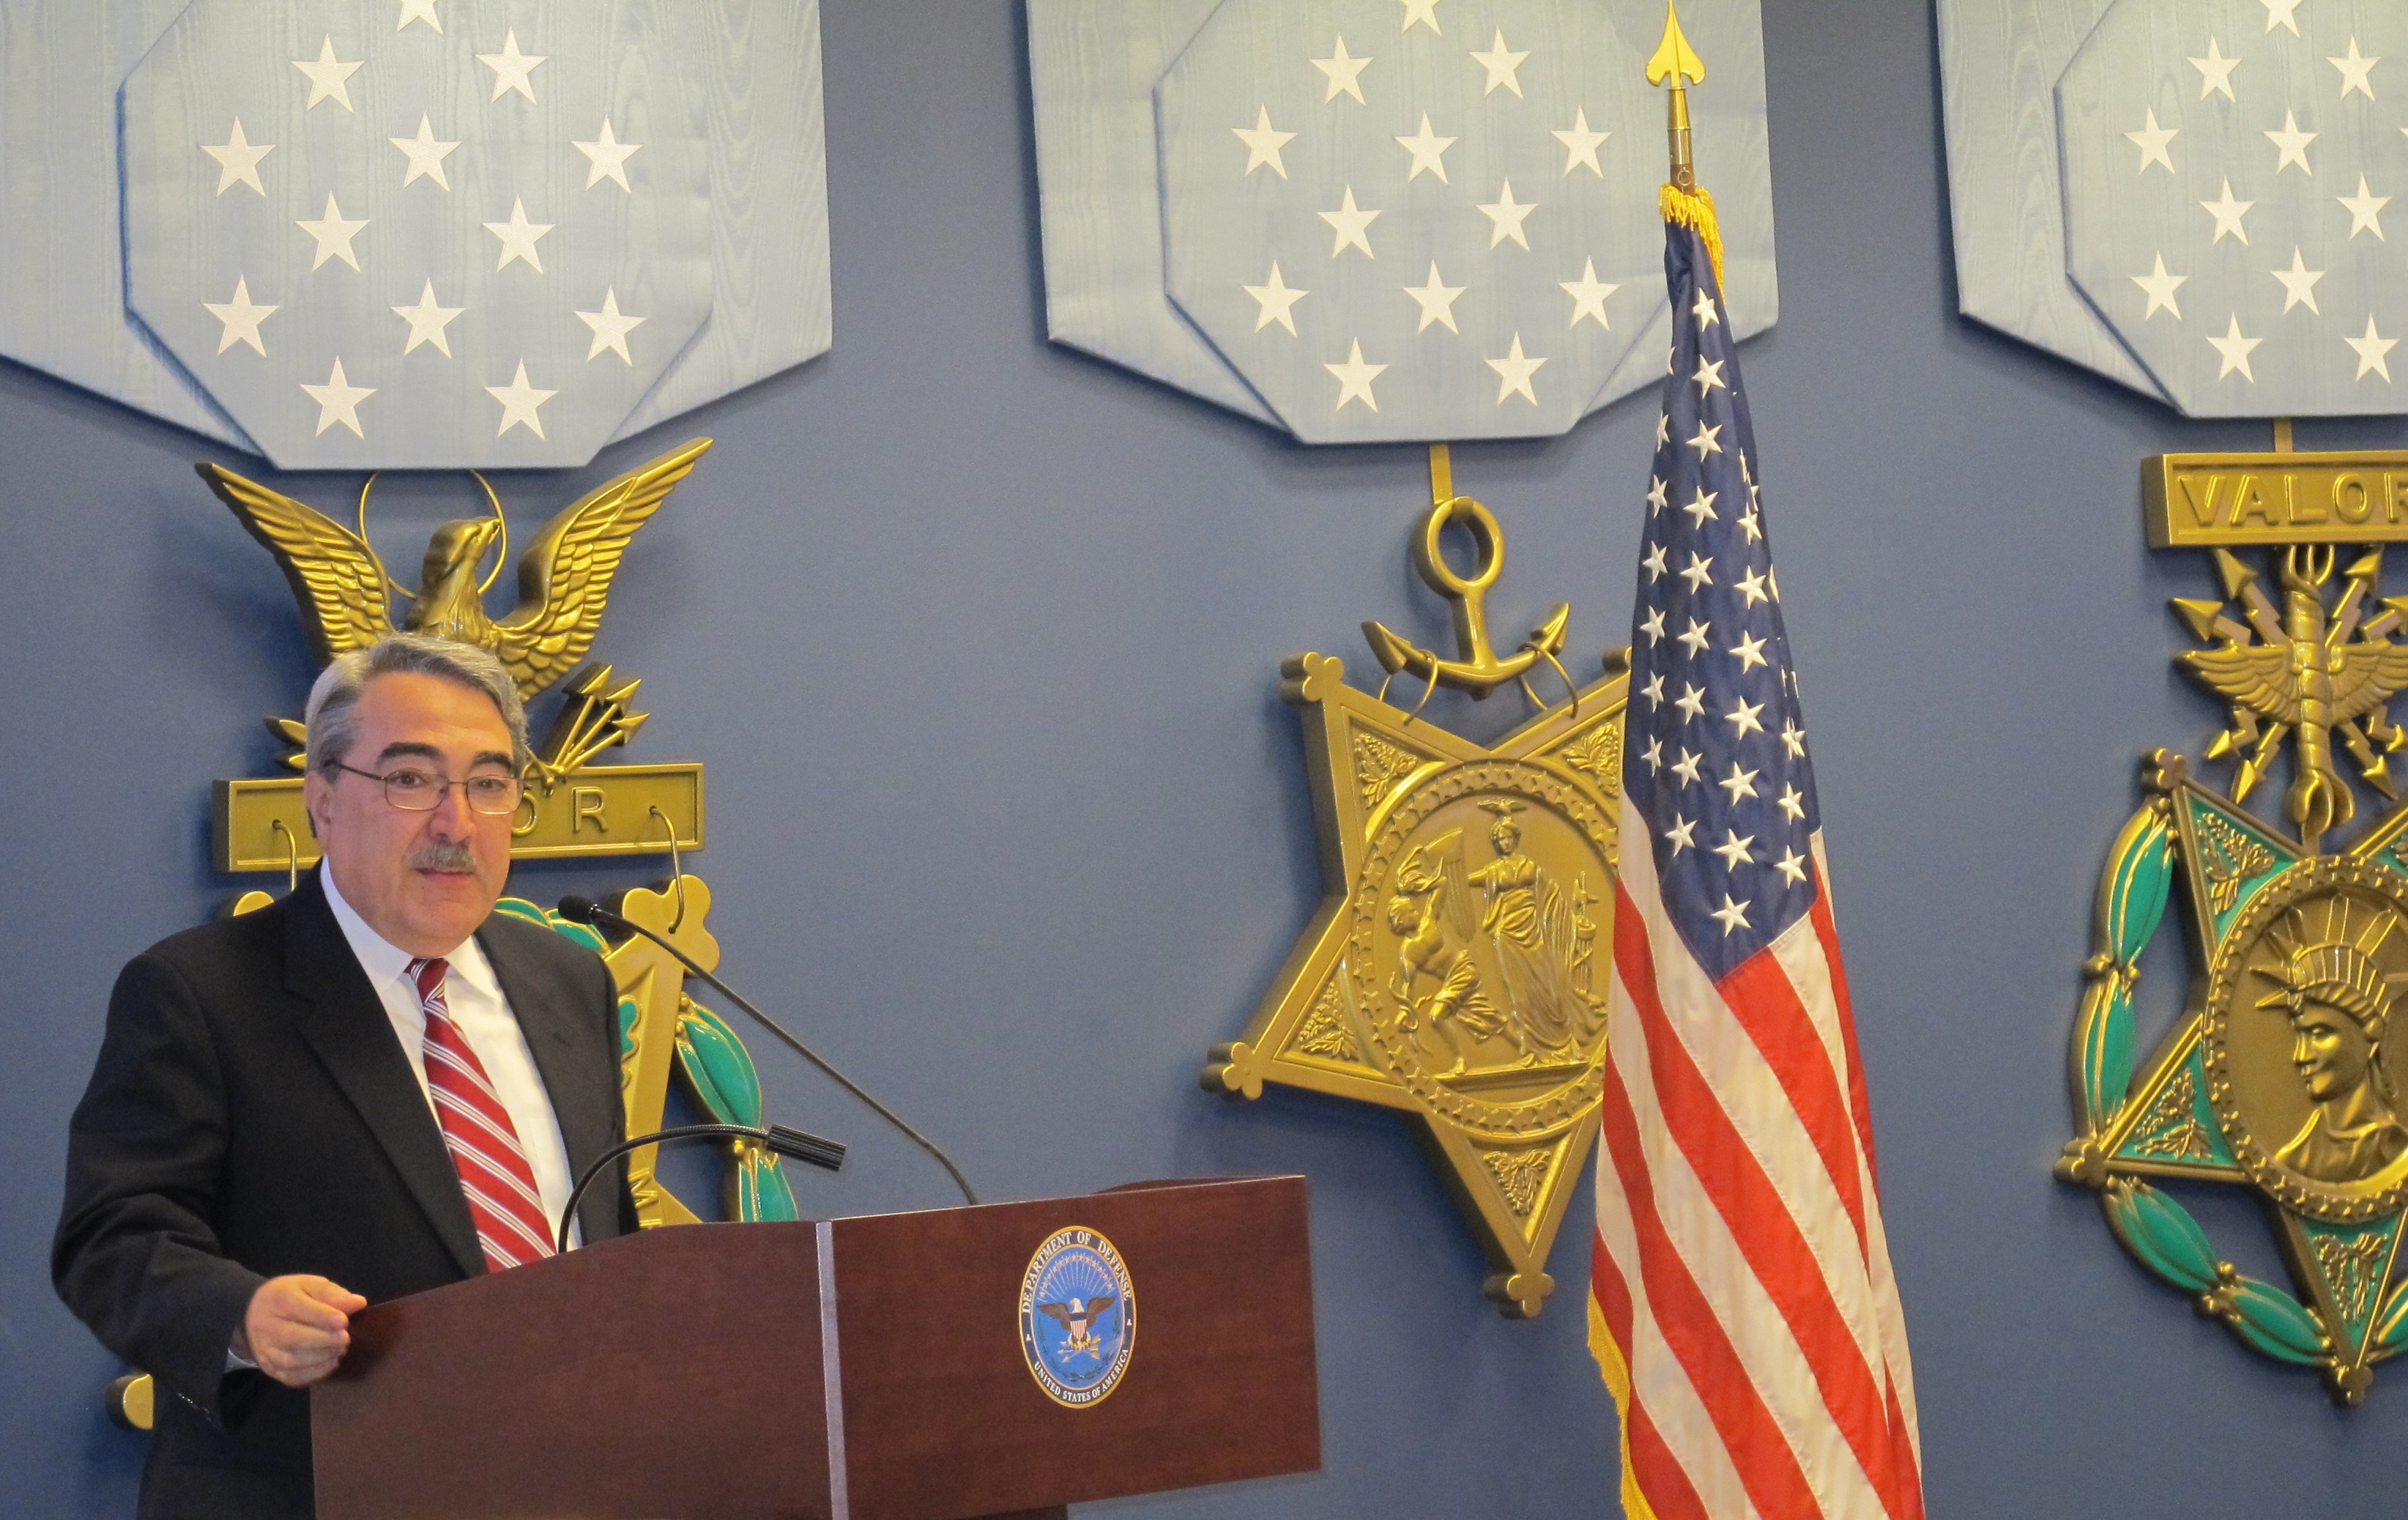 Congressman Butterfield speaking at the Pentagon